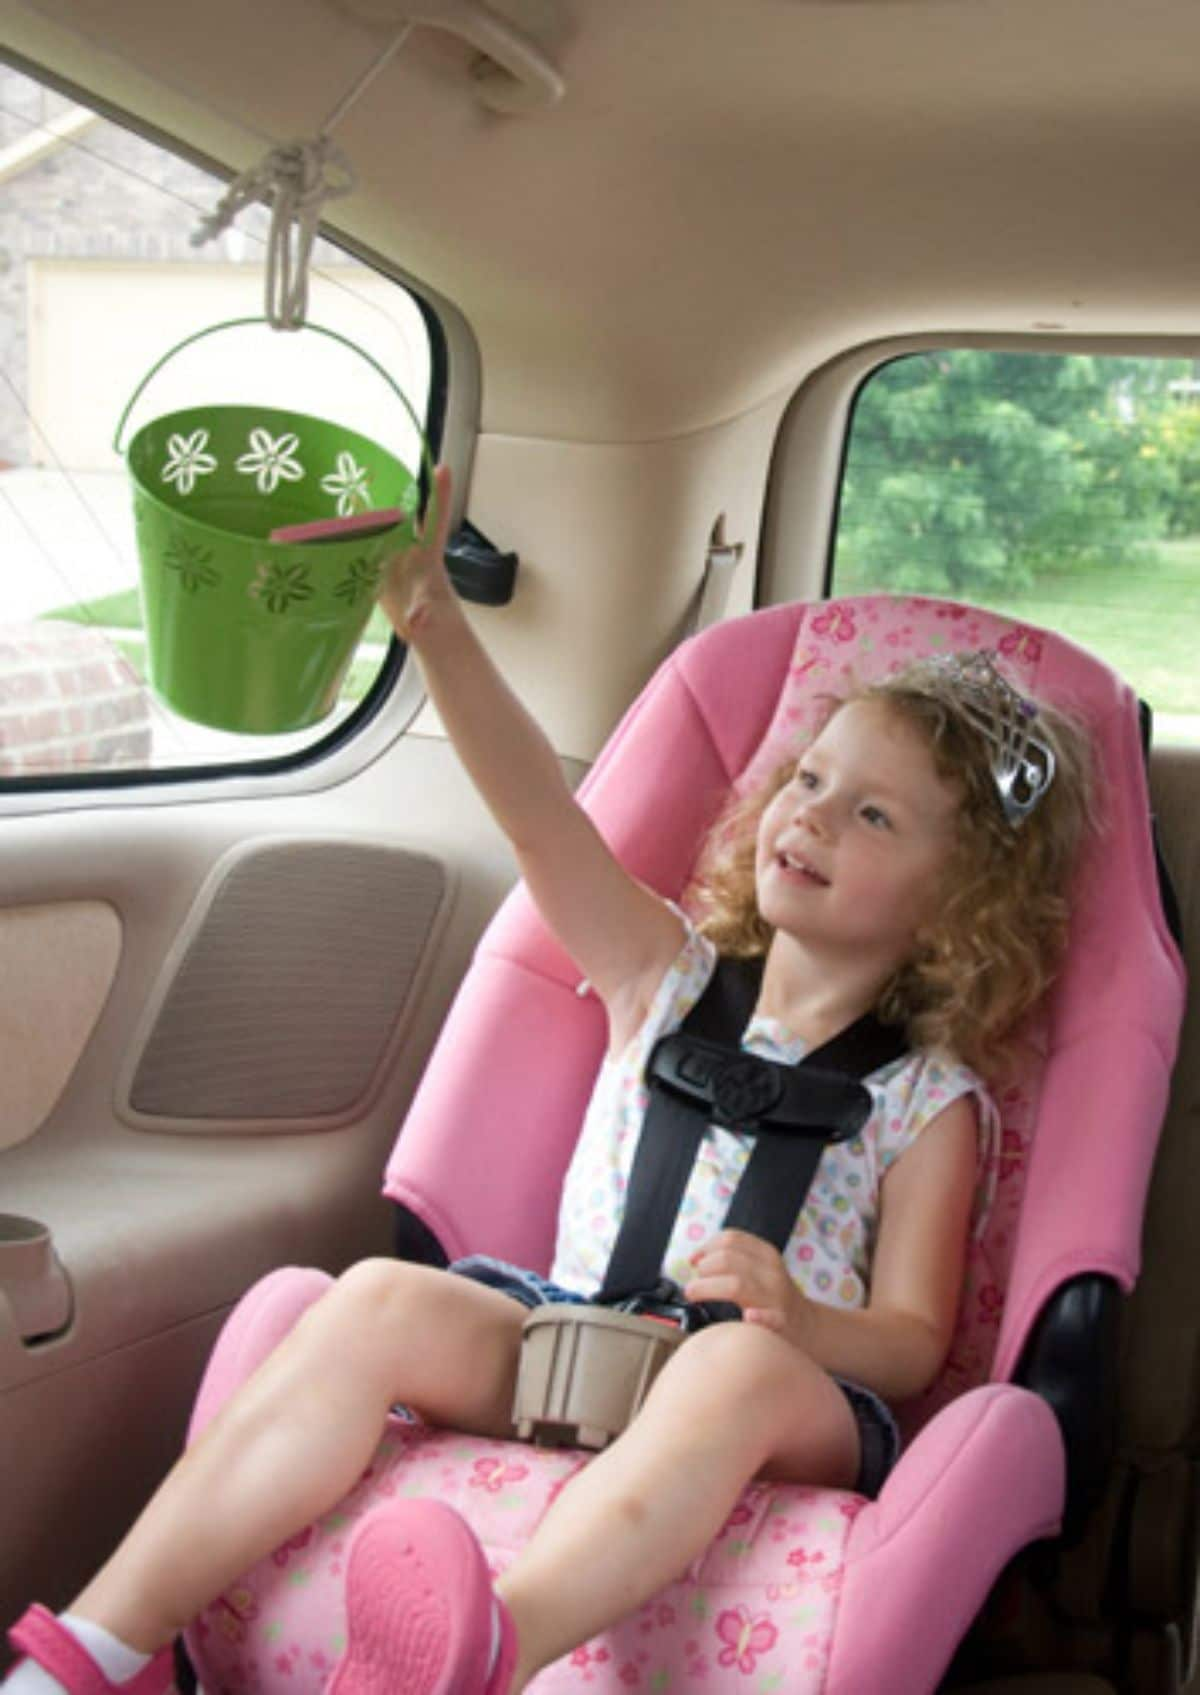 a girl in a pink car seat reaches up towards a green bucket hanging from a string